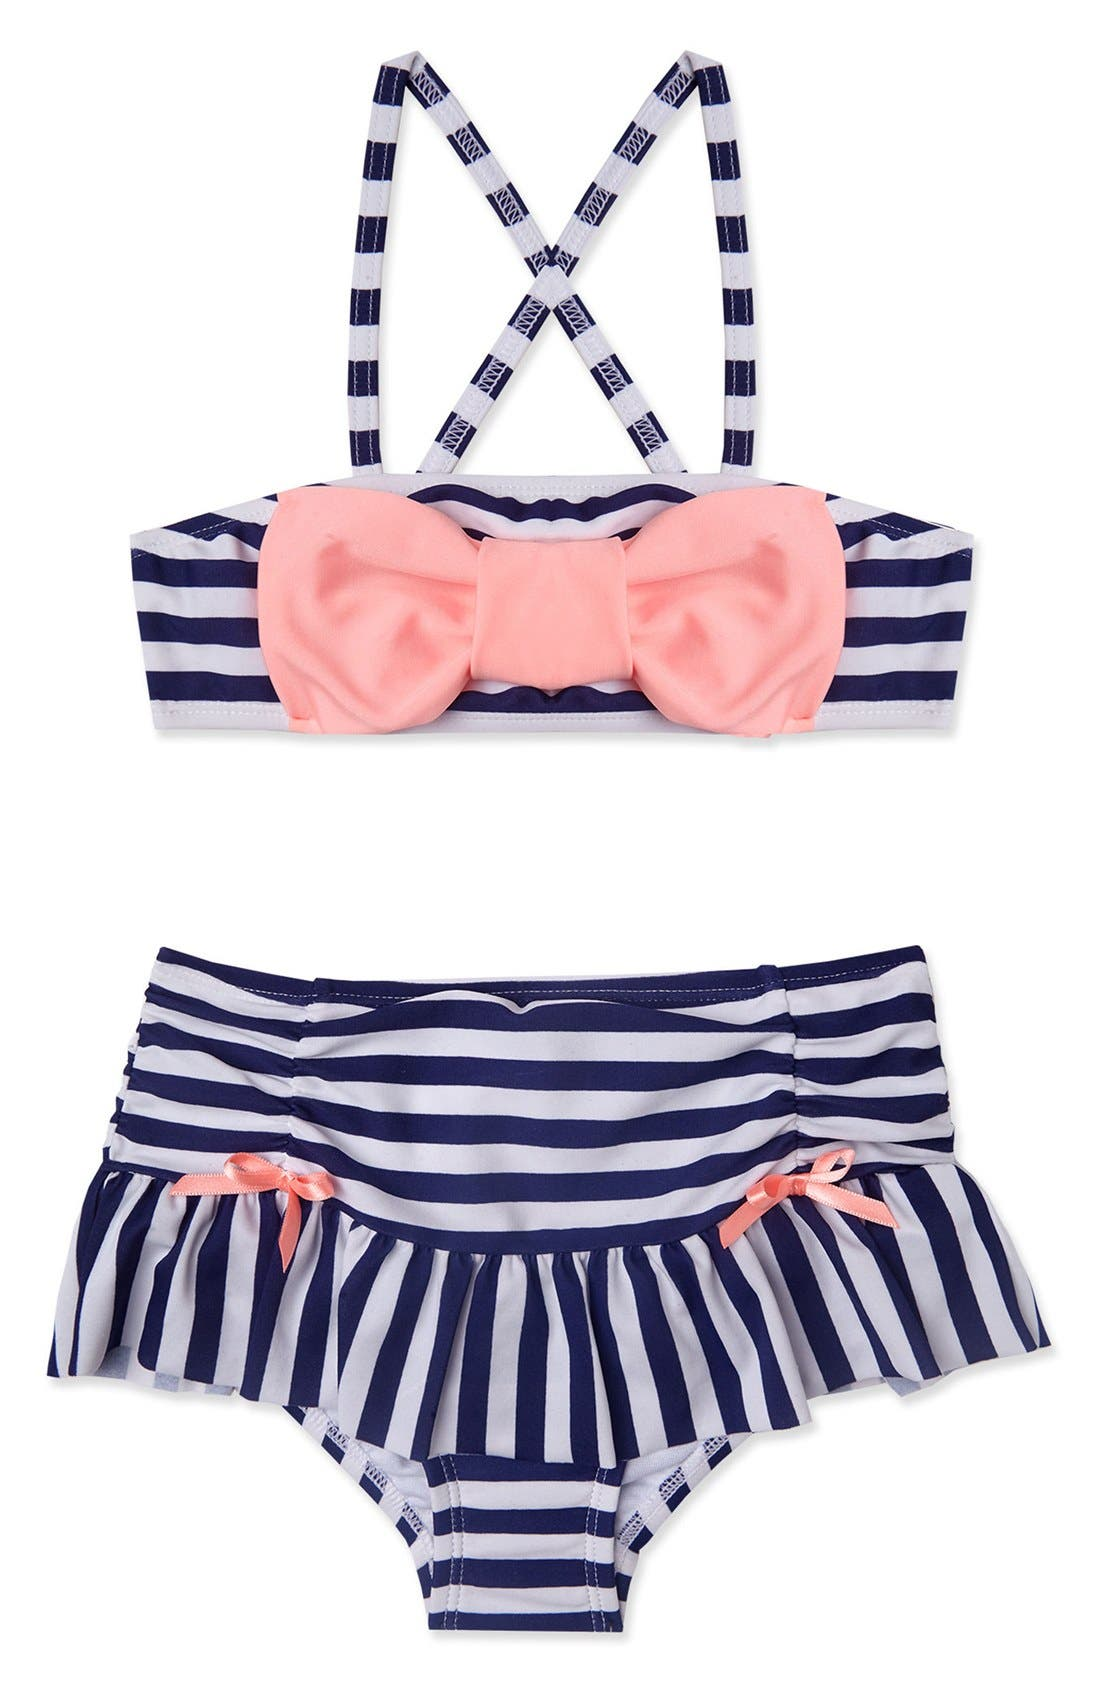 Main Image - Hula Star 'Ships Ahoy' Two-Piece Swimsuit (Toddler Girls & Little Girls)